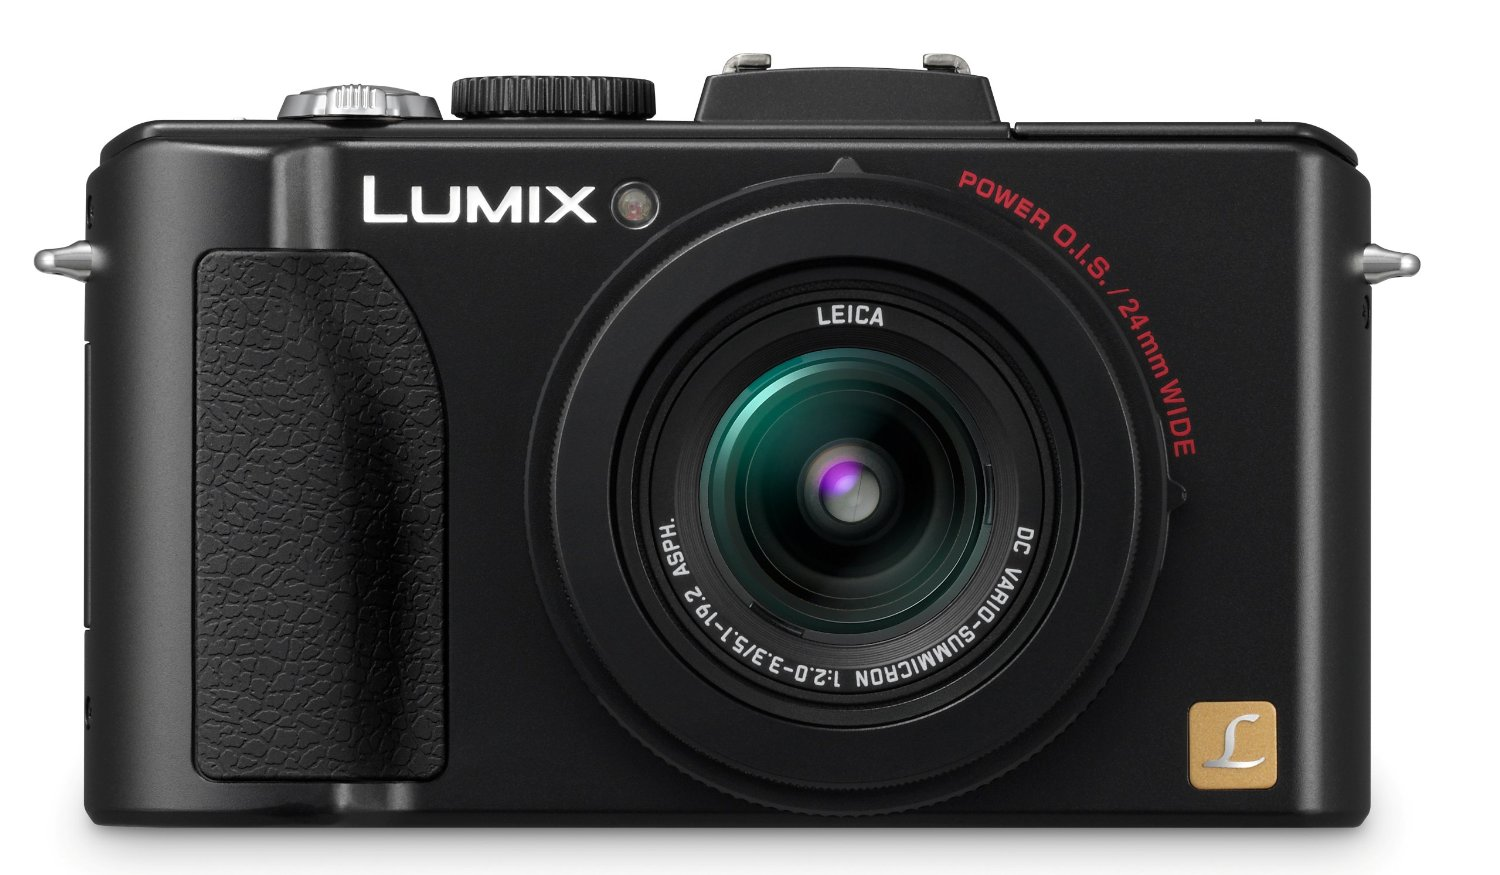 Panasonic Lumix LX5 at Amazon